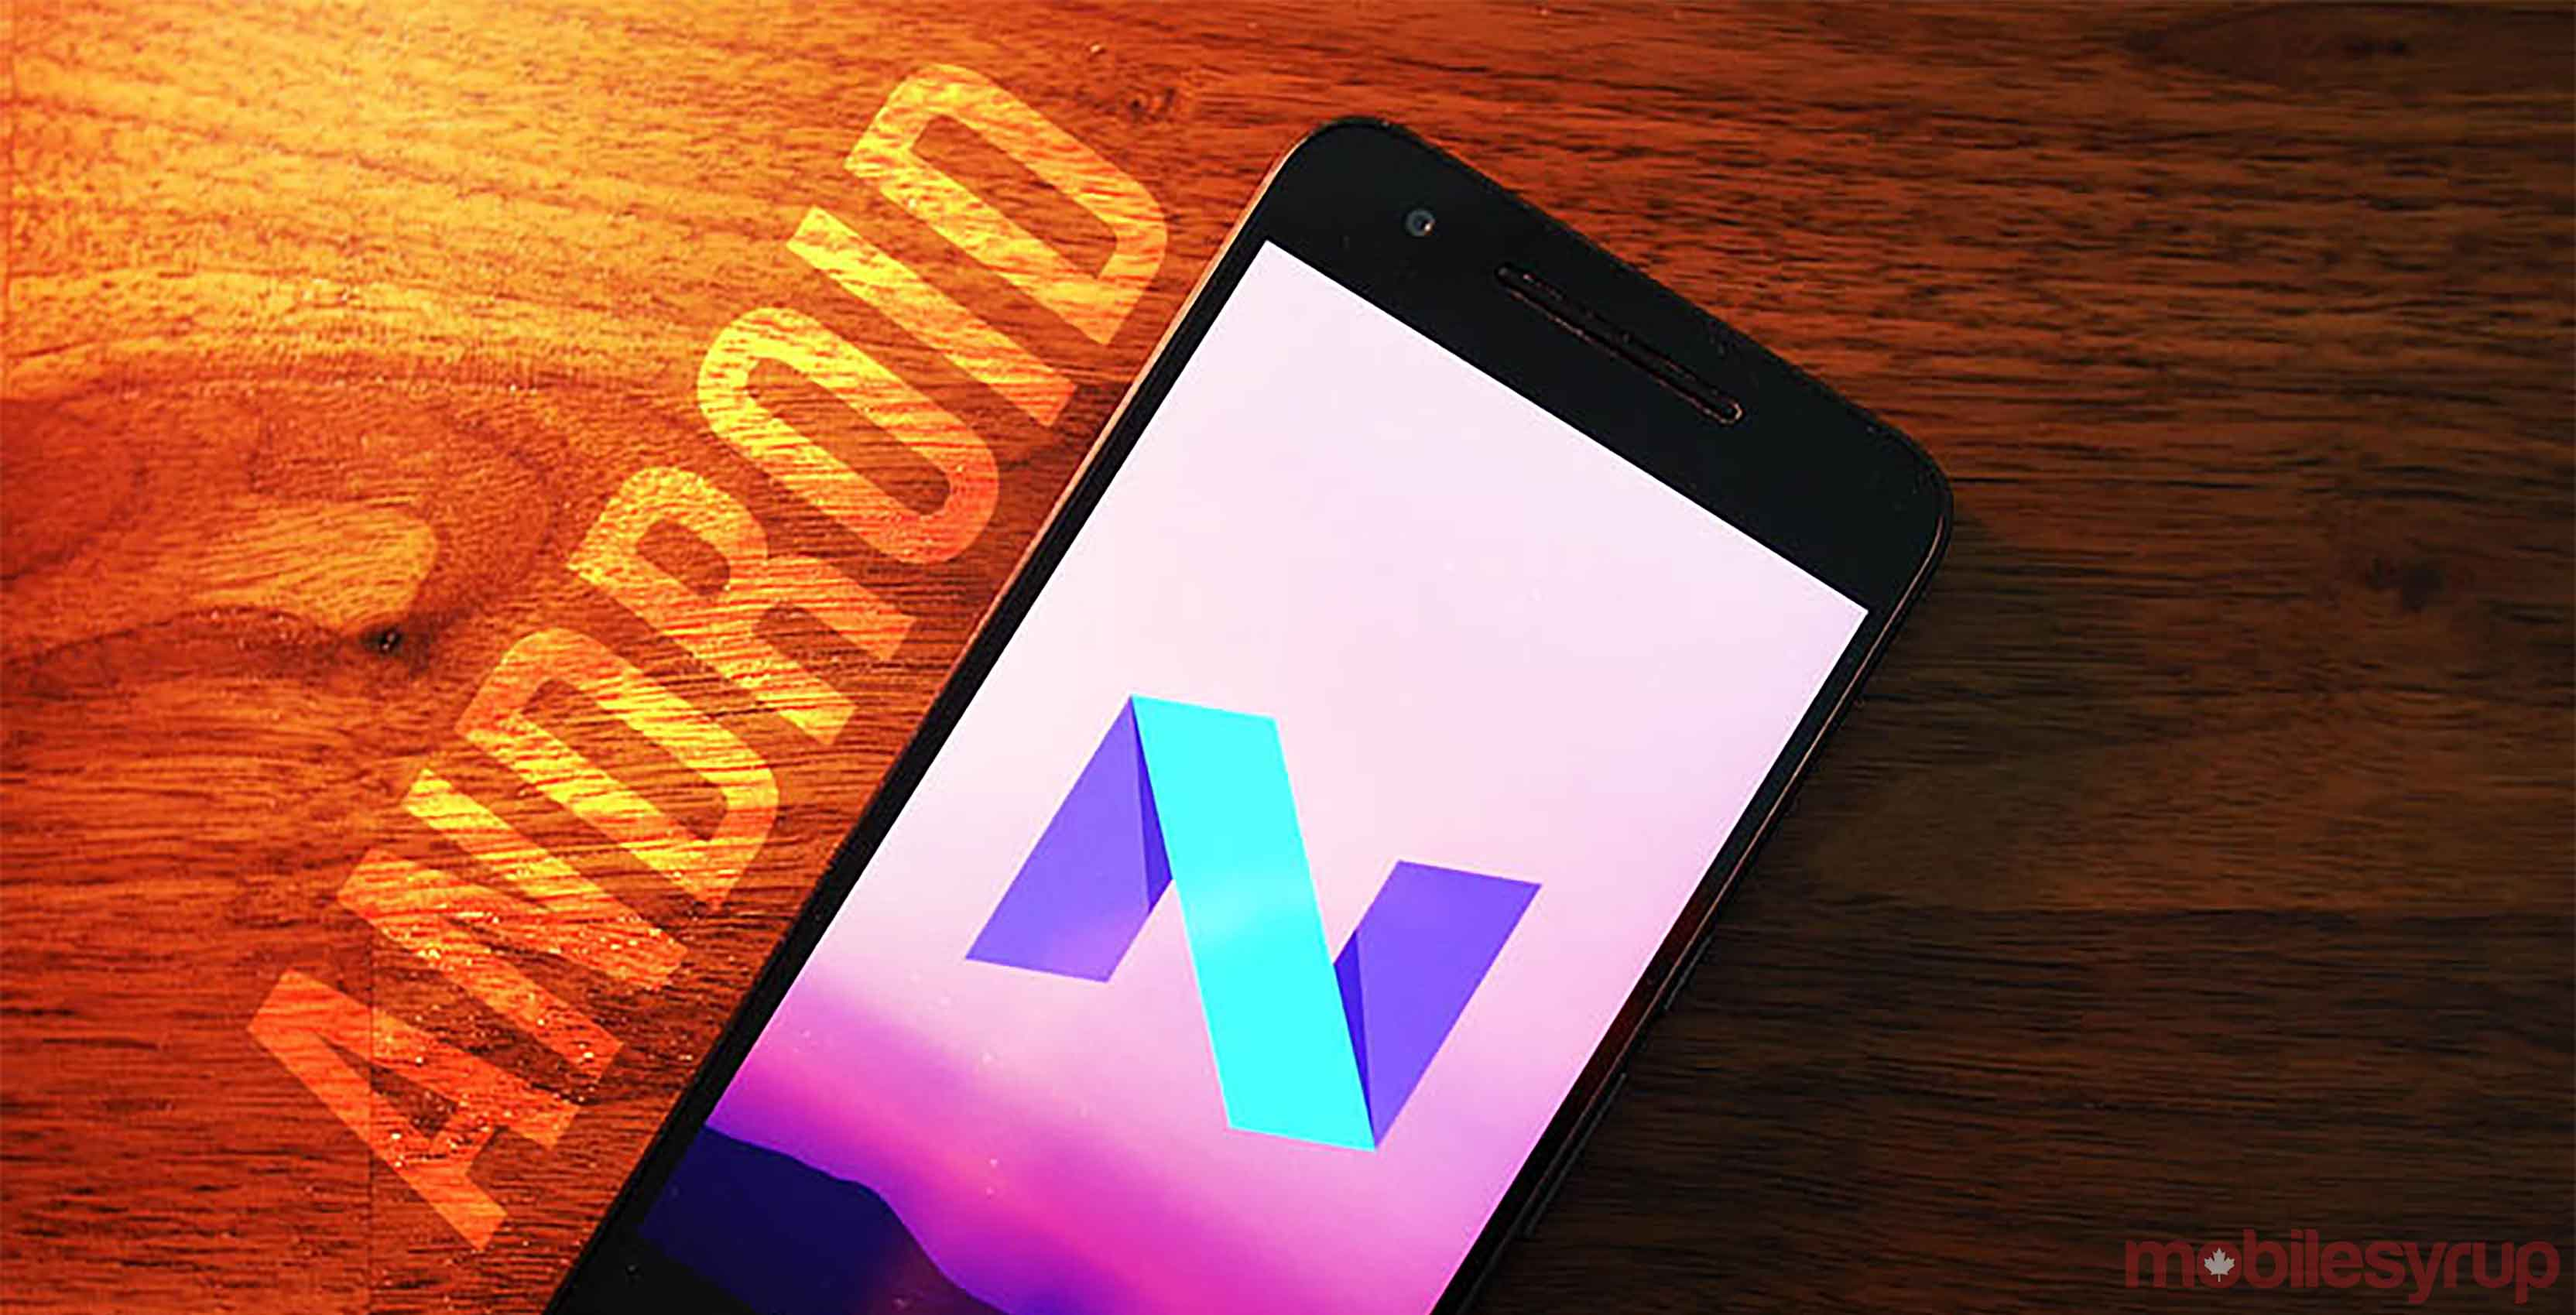 smartphone running Android 7.1.2 Nougat